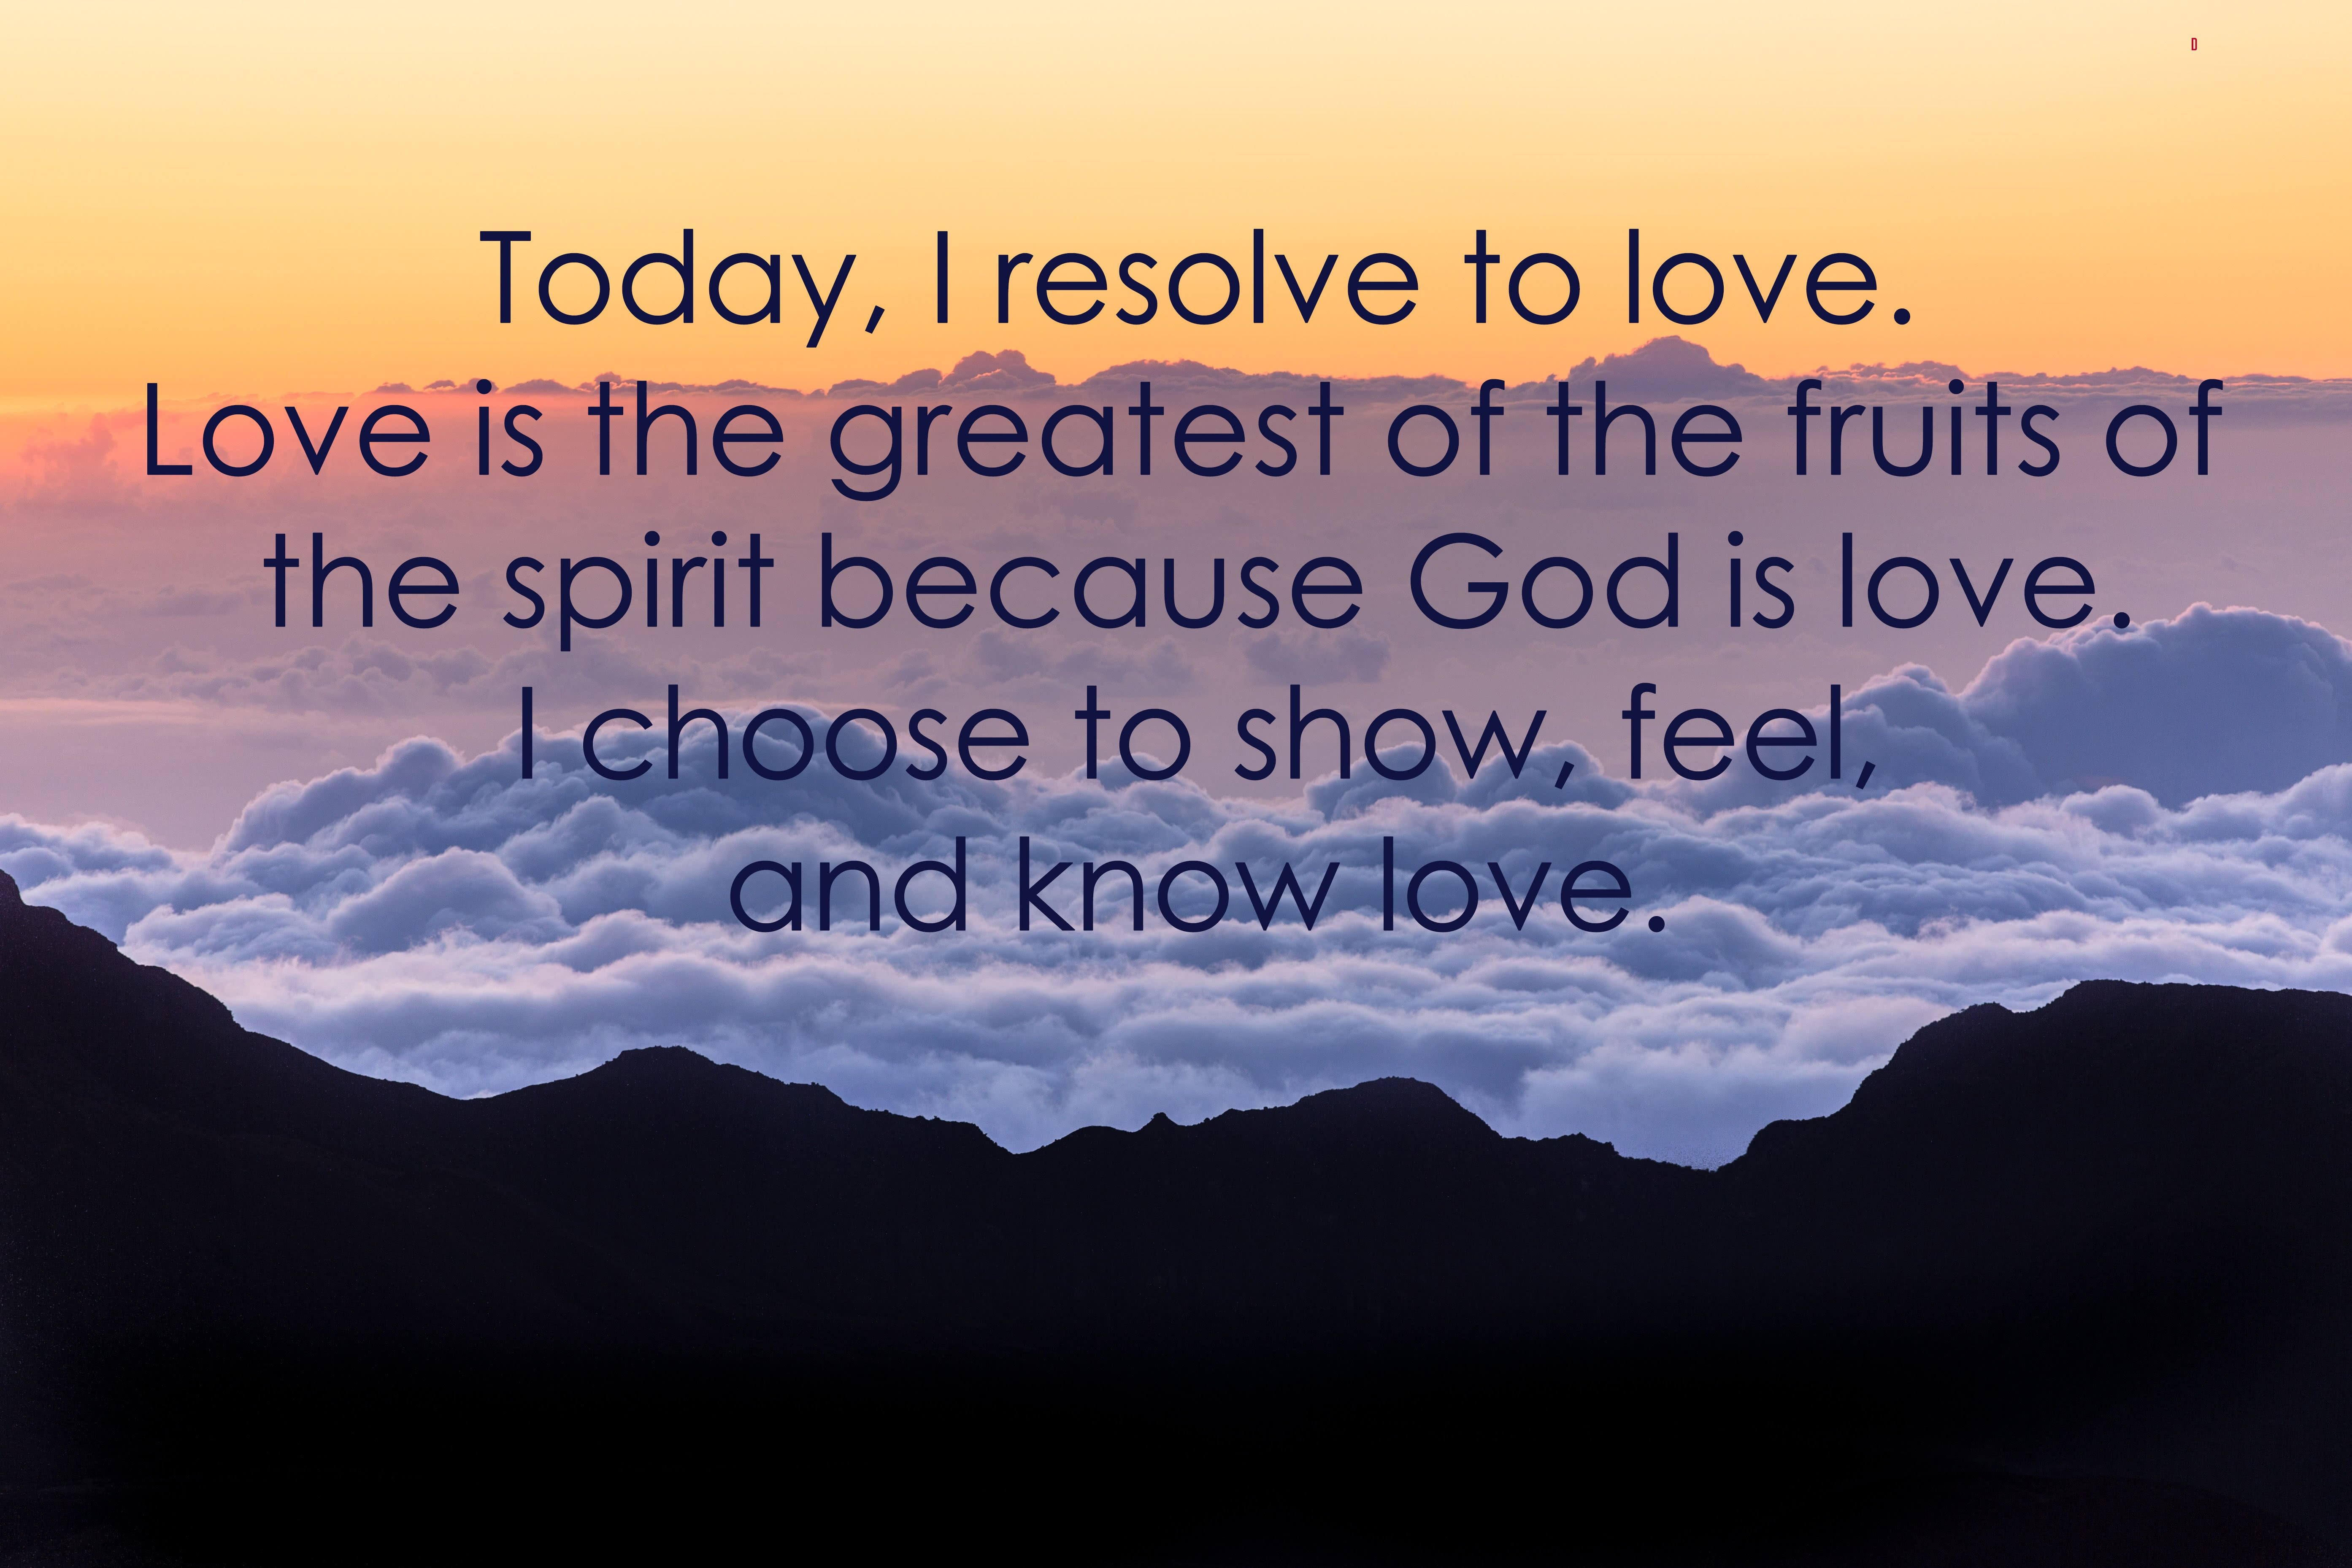 Today, I resolve to love. Love is the greatest of the Fruits of the Spirit becuase God is love. I choose to show, feel, and know love.